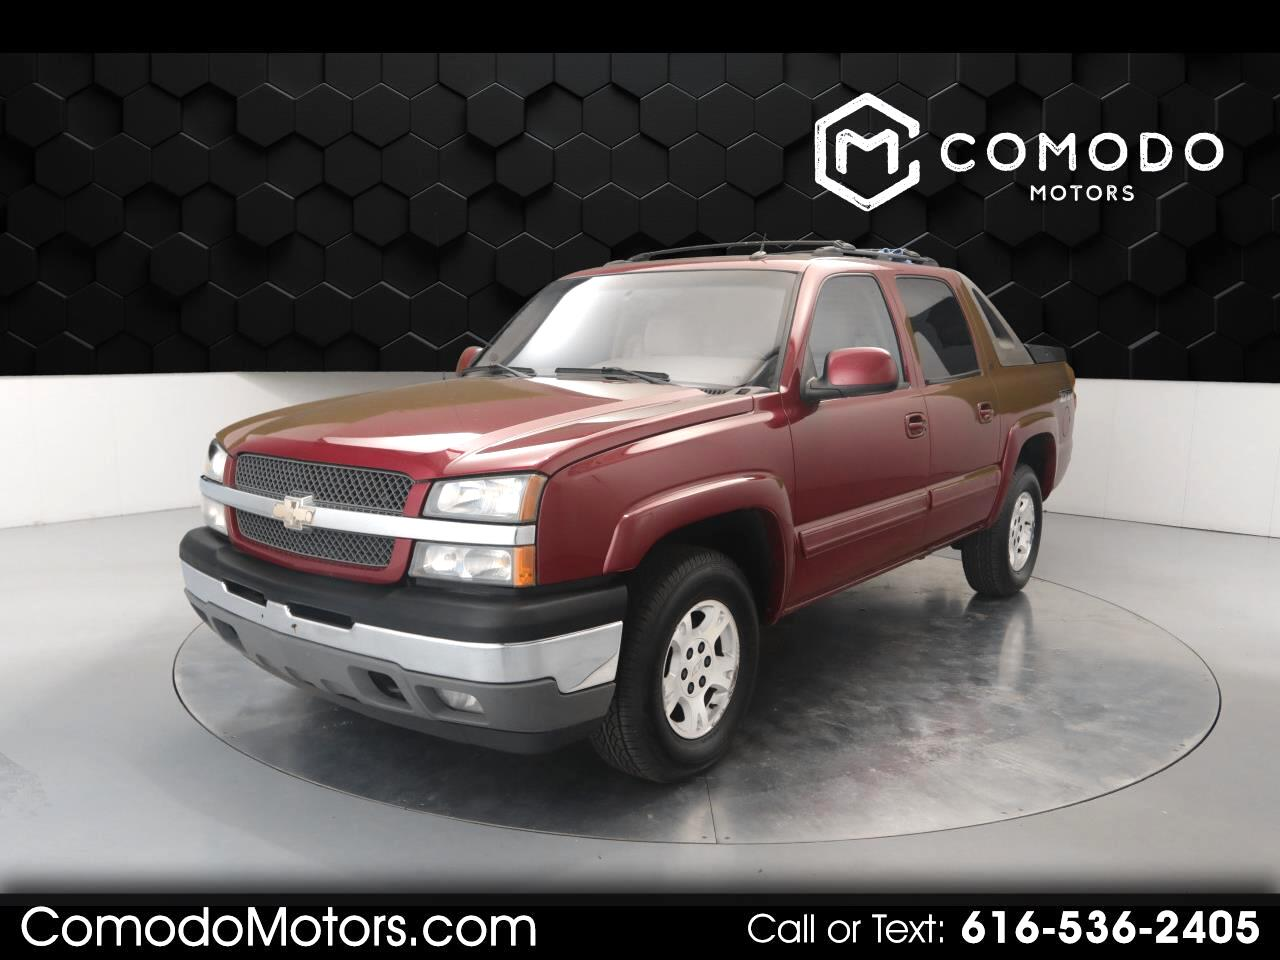 2005 Chevrolet Avalanche 4WD Crew Cab LT